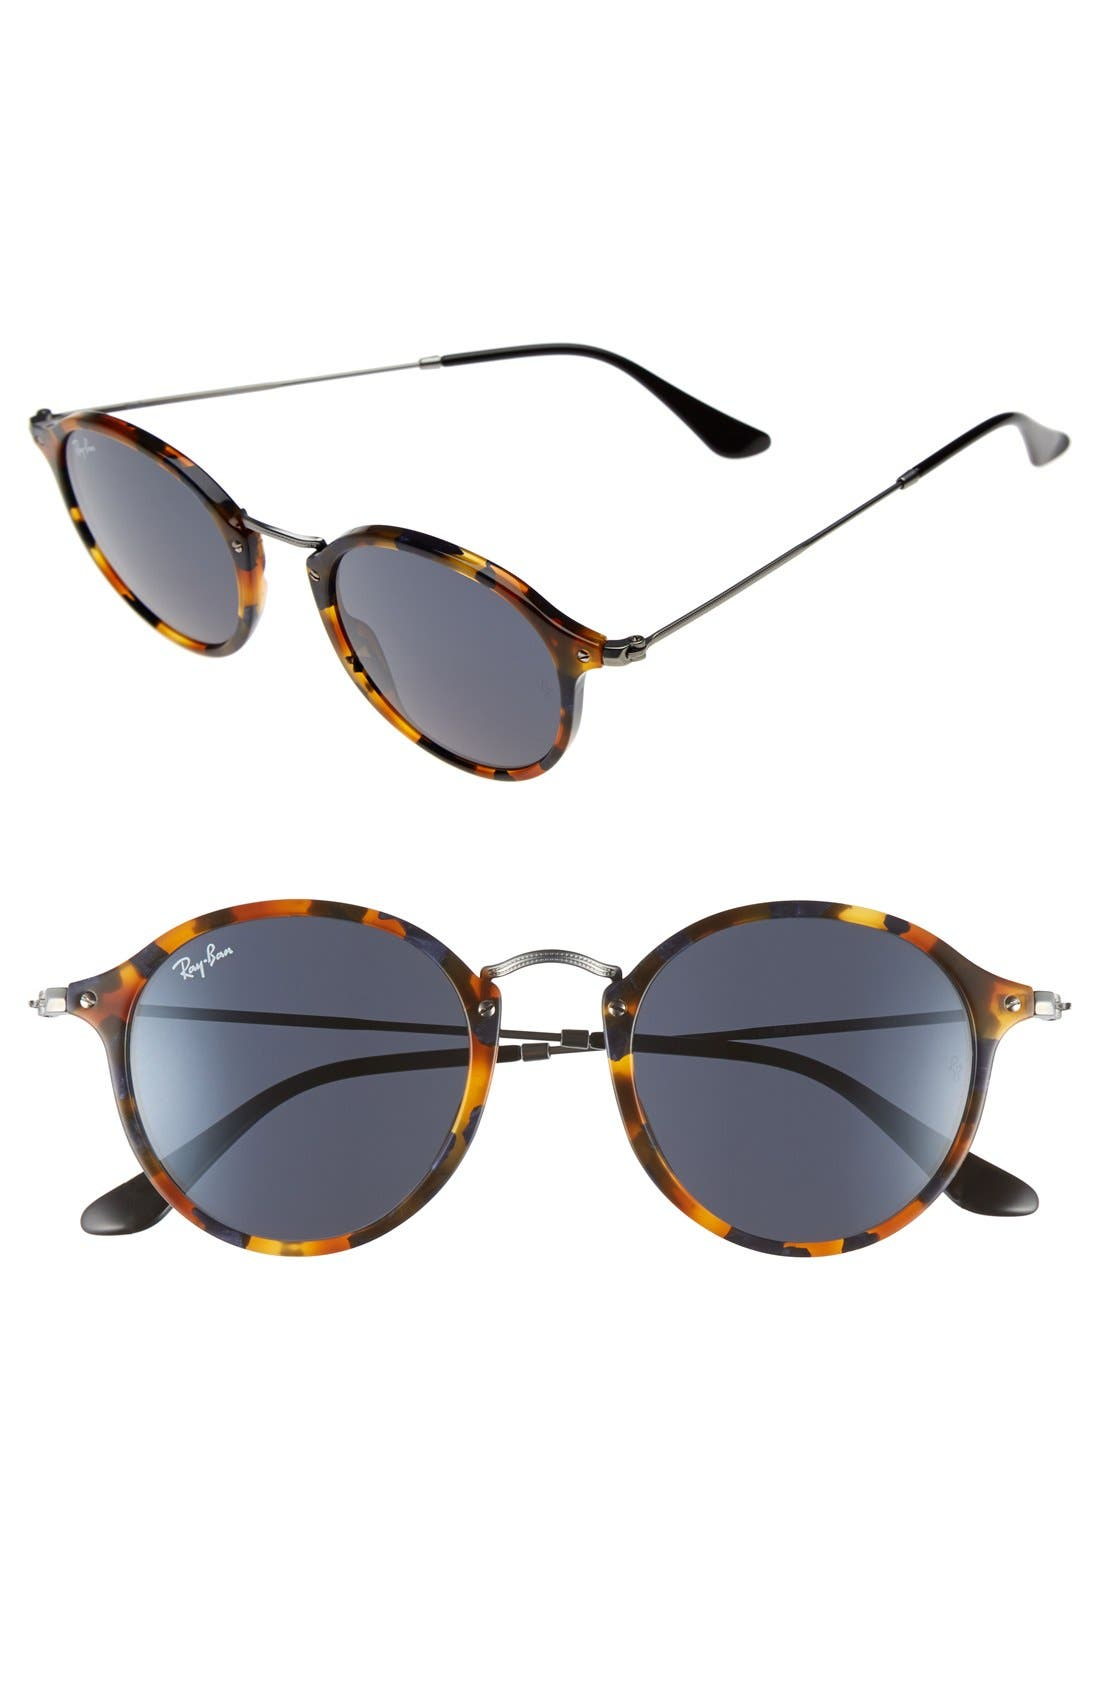 49mm Retro Sunglasses,                             Main thumbnail 1, color,                             SPOTTED BLUE HAVANA/ GREY